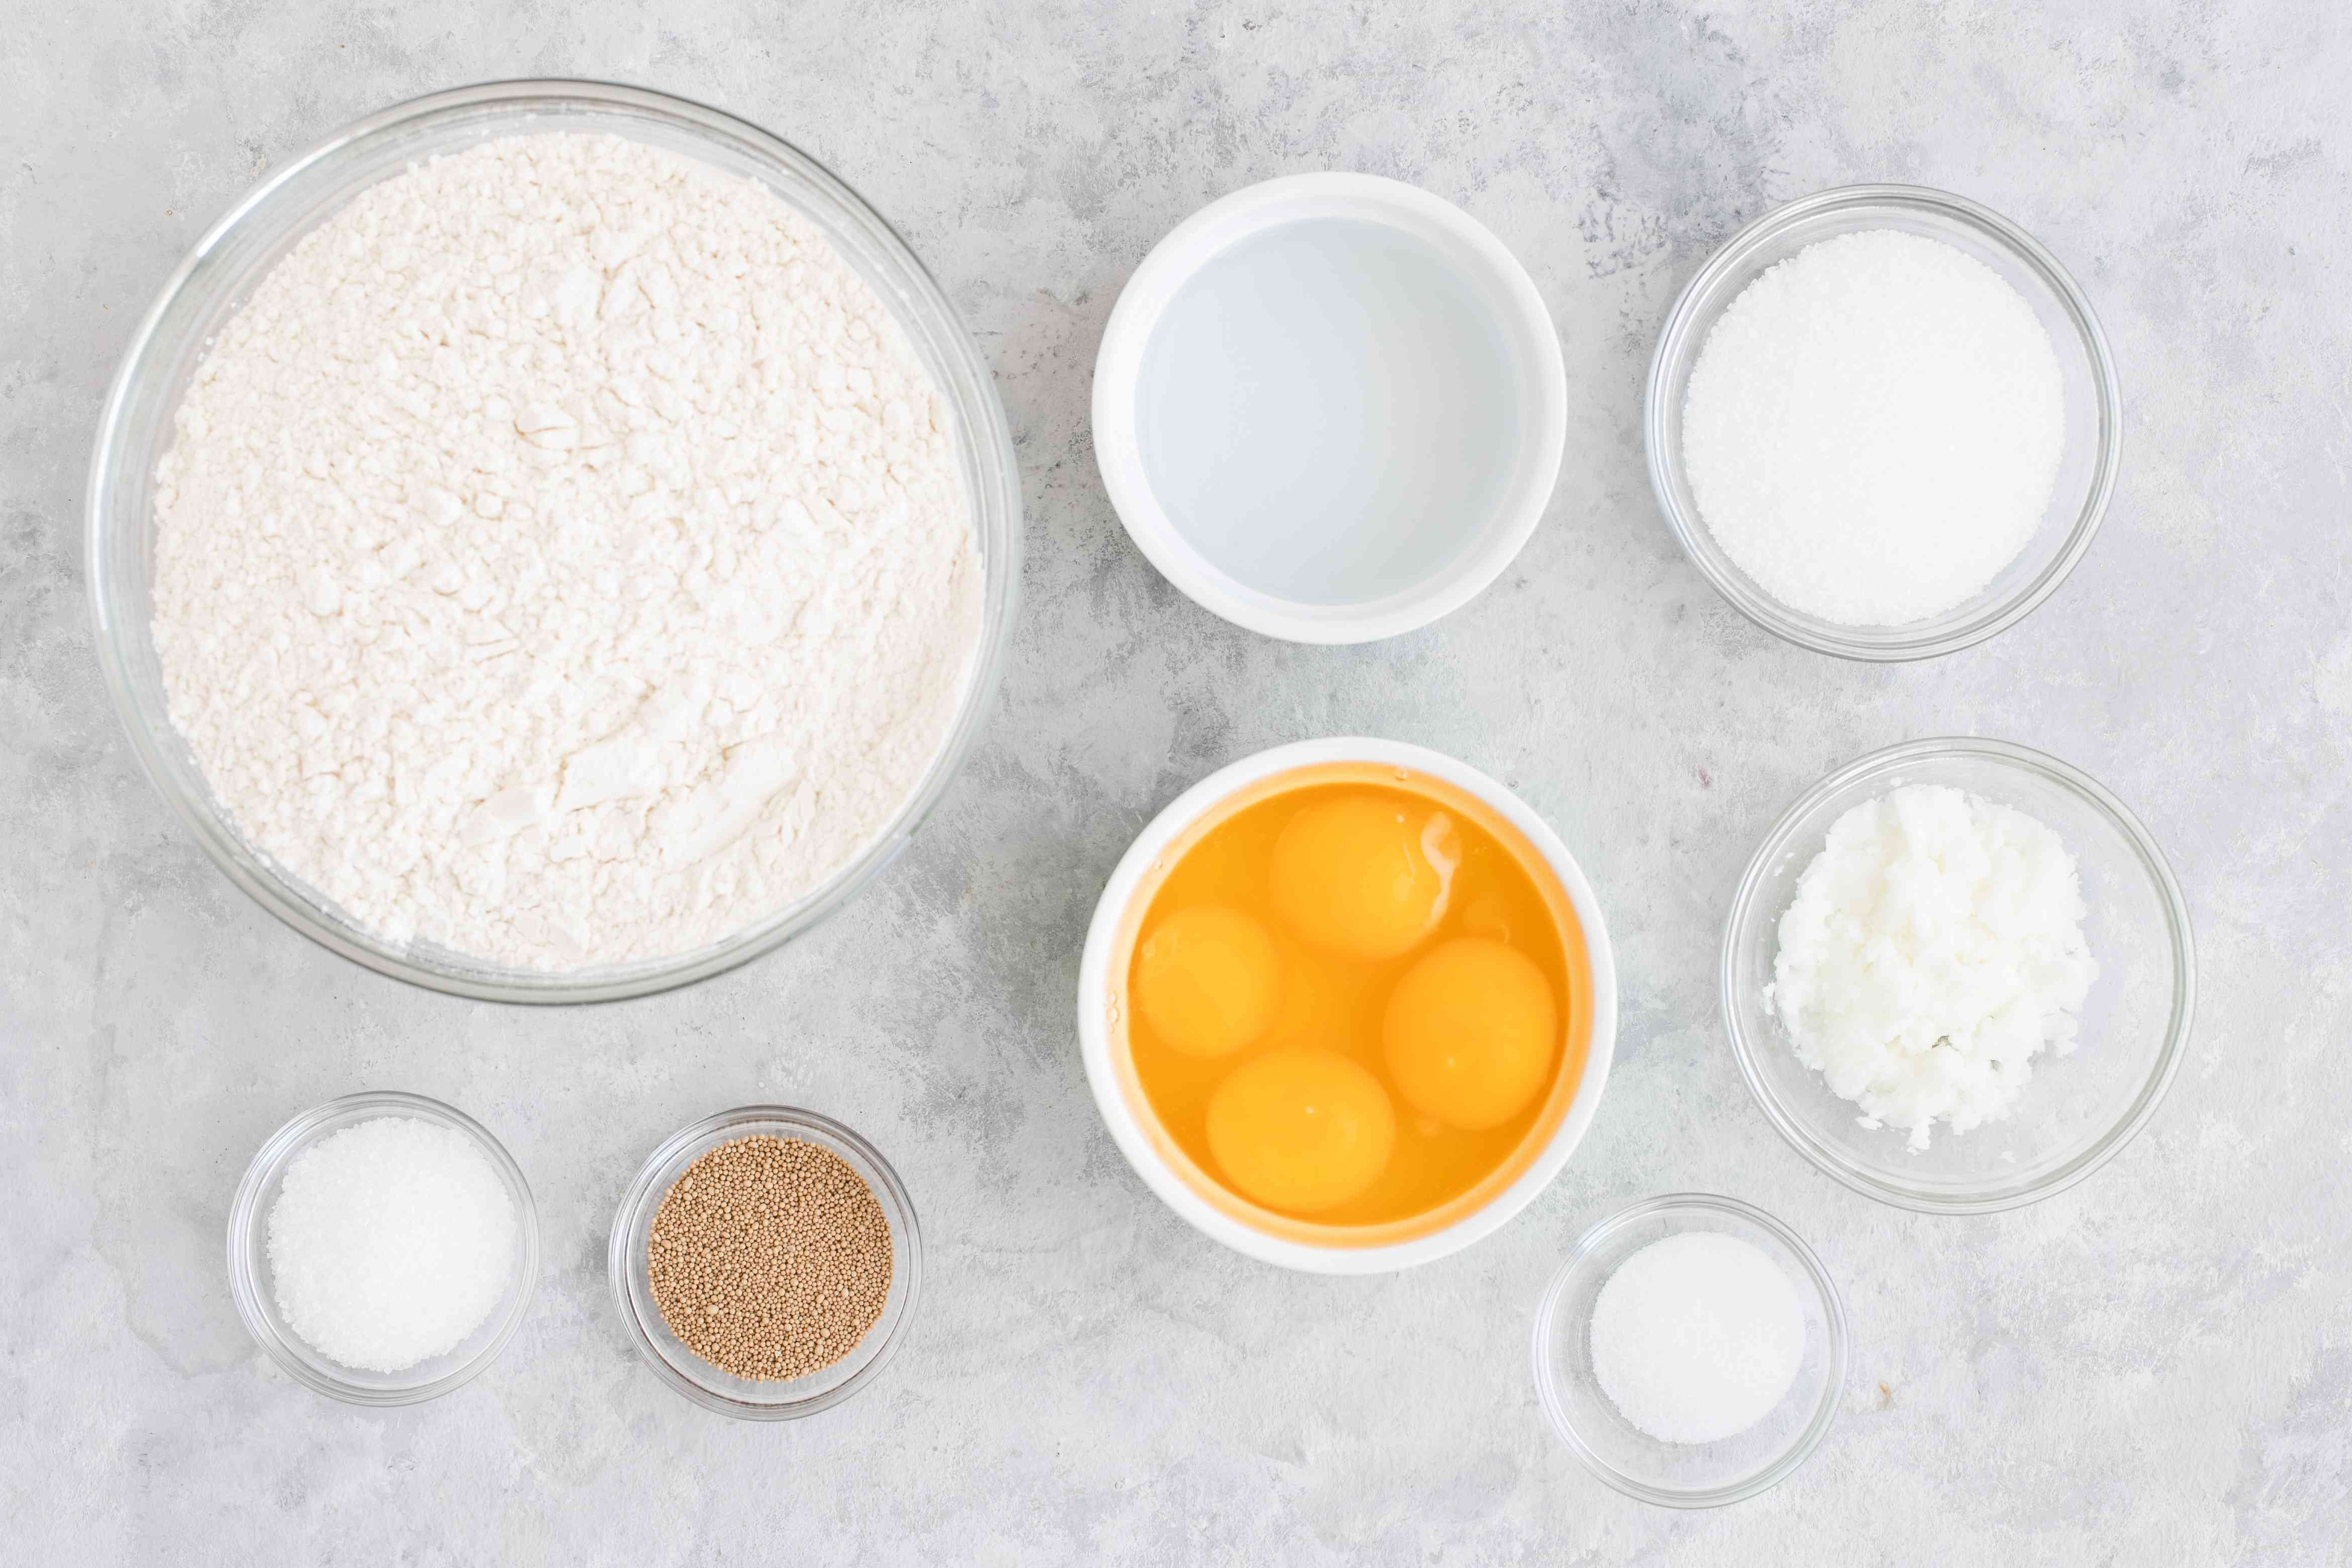 Ingredients for pan dulce